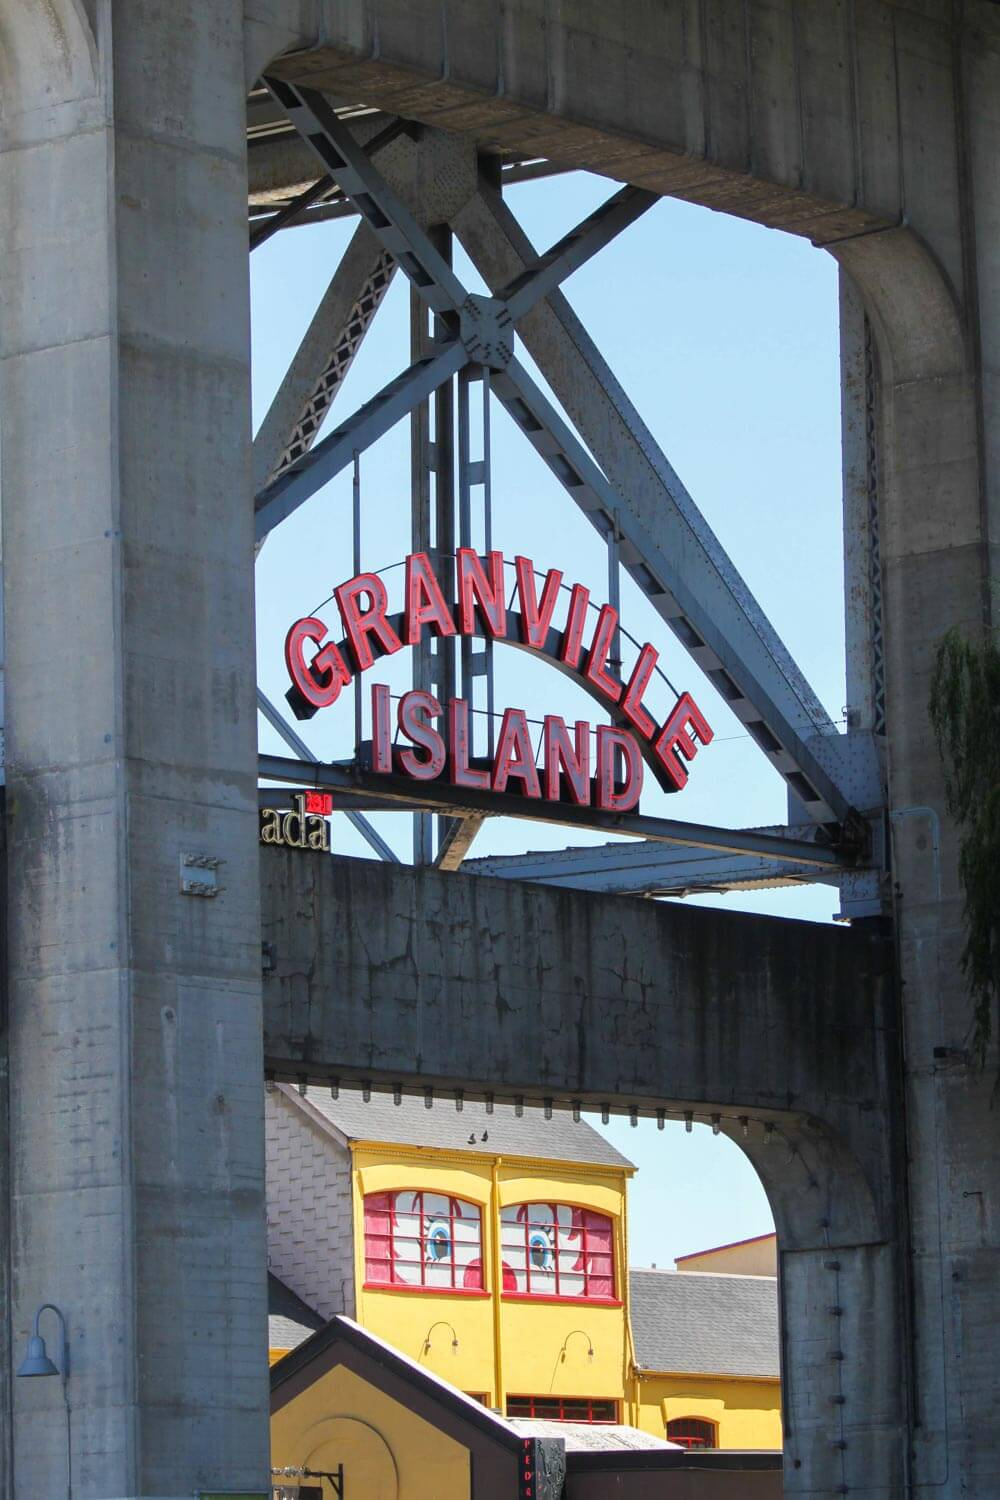 Entrance to Granville island